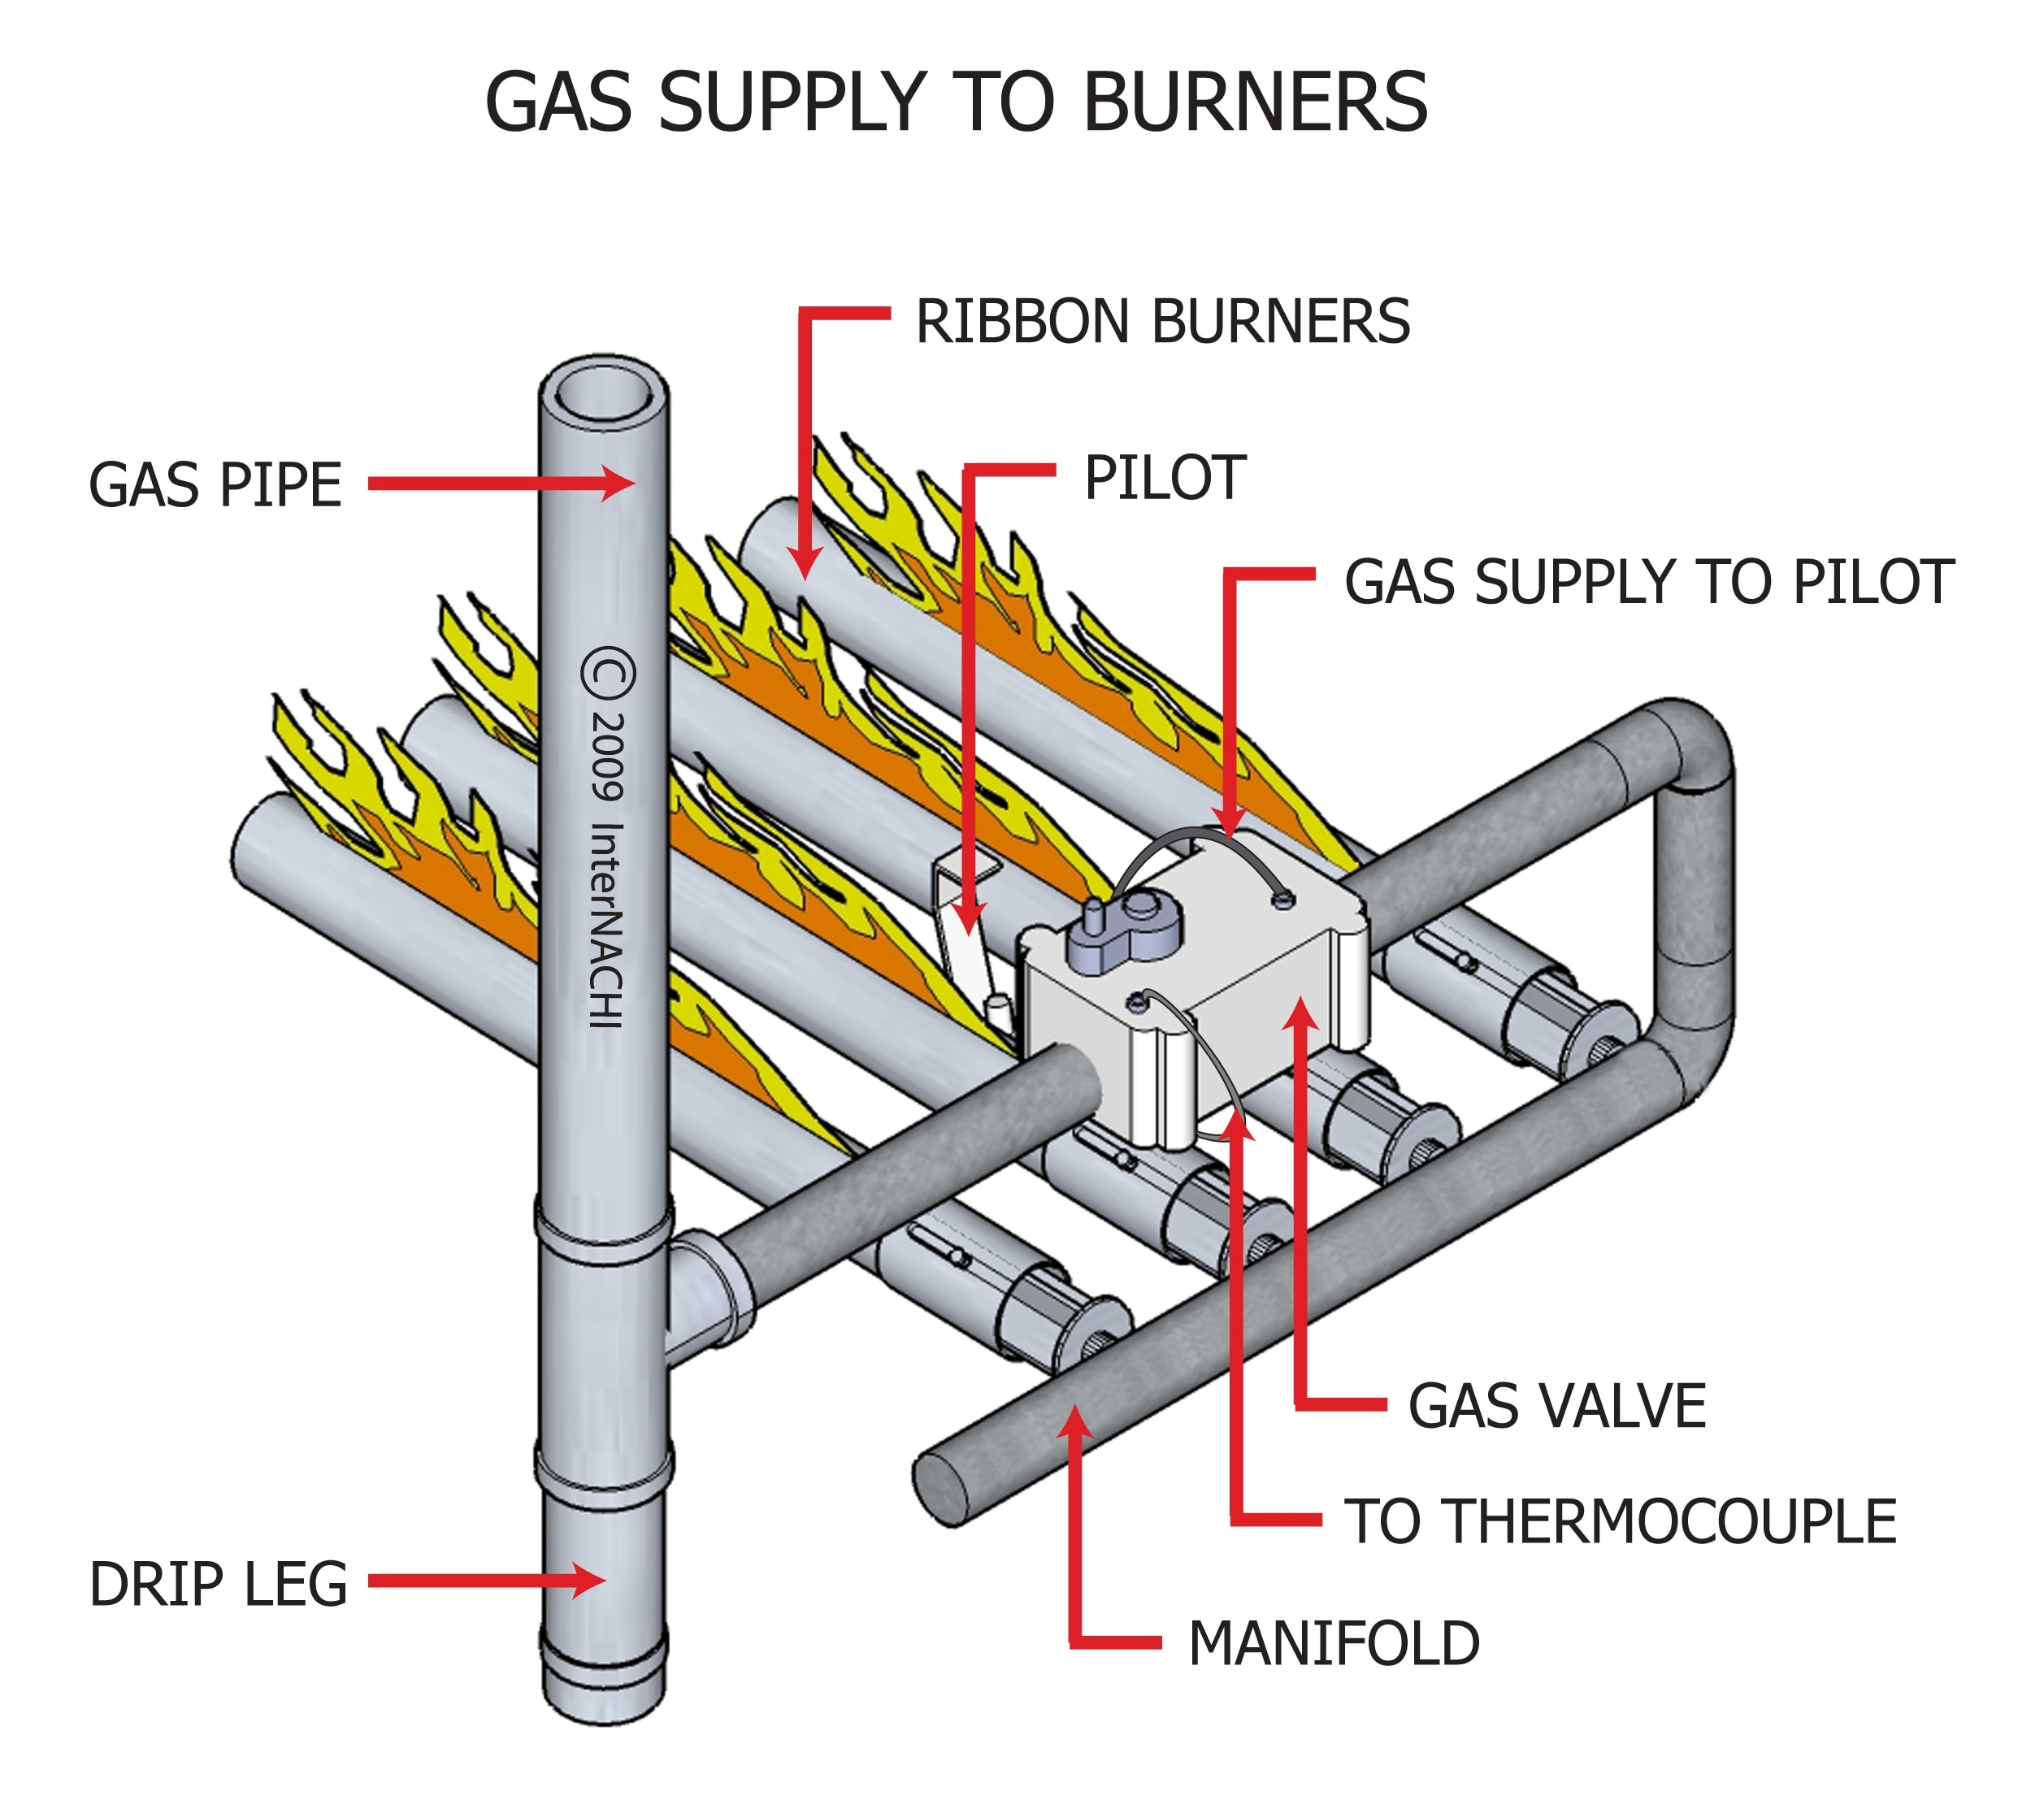 Gas supply to burners.